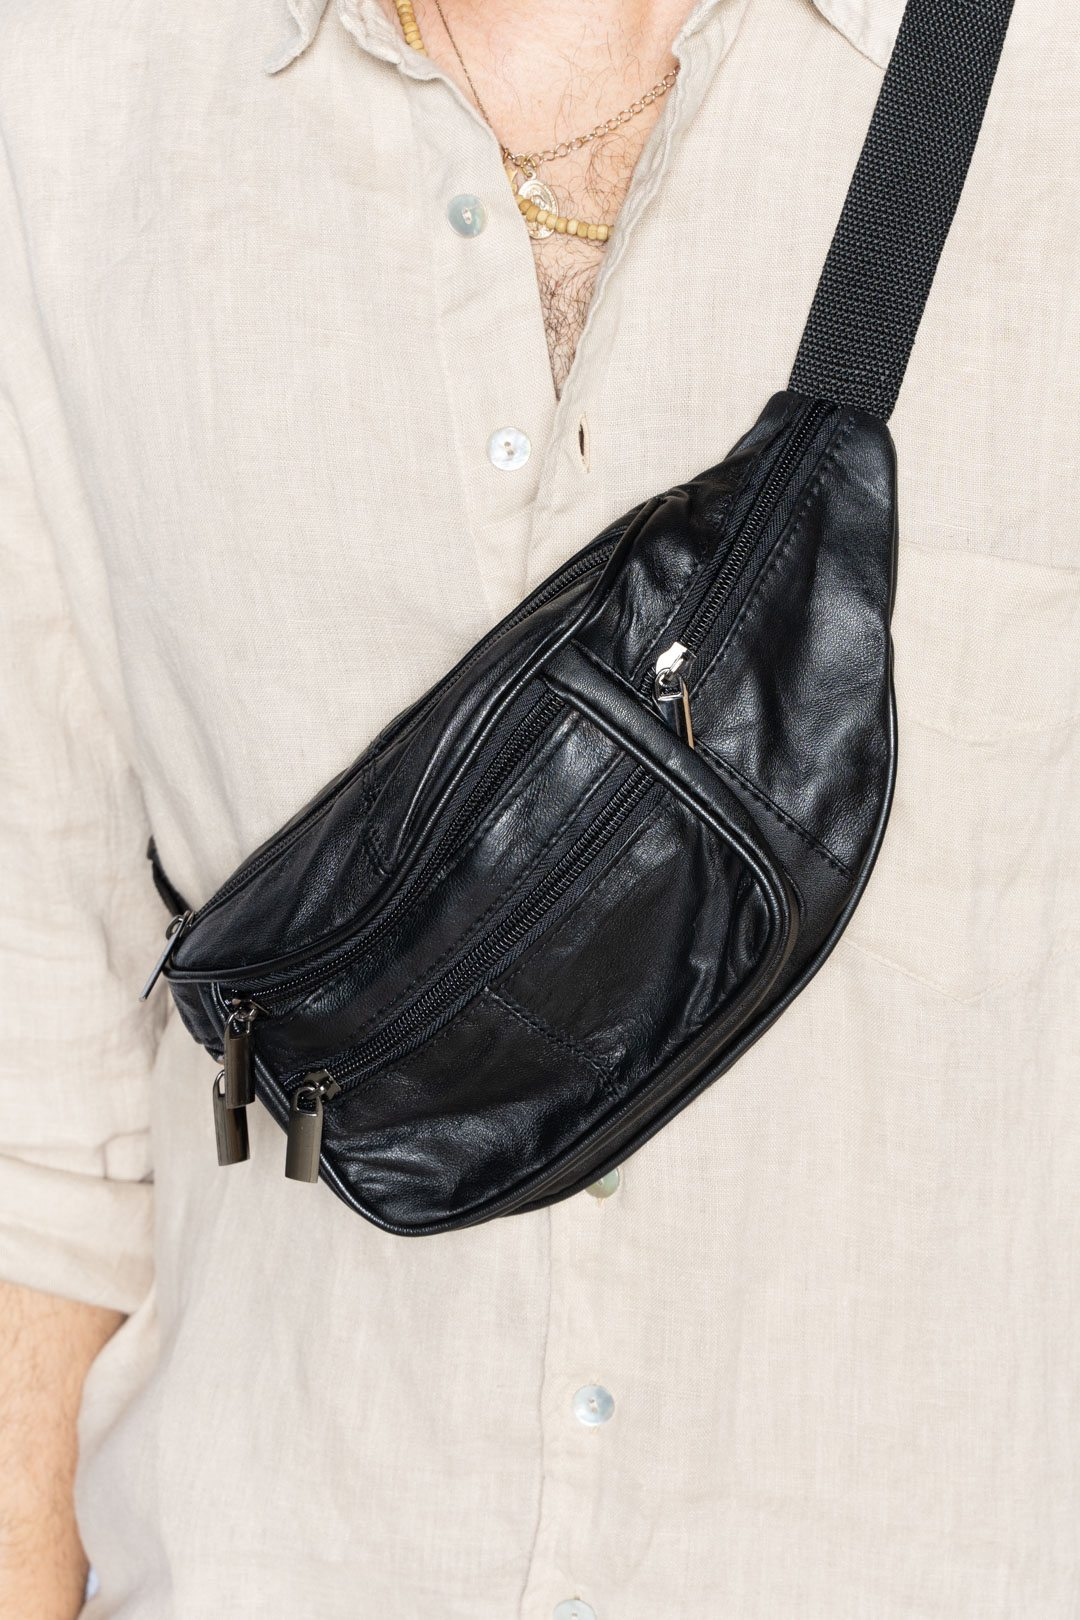 Black Leather Fanny Pack - VinoKilo.com